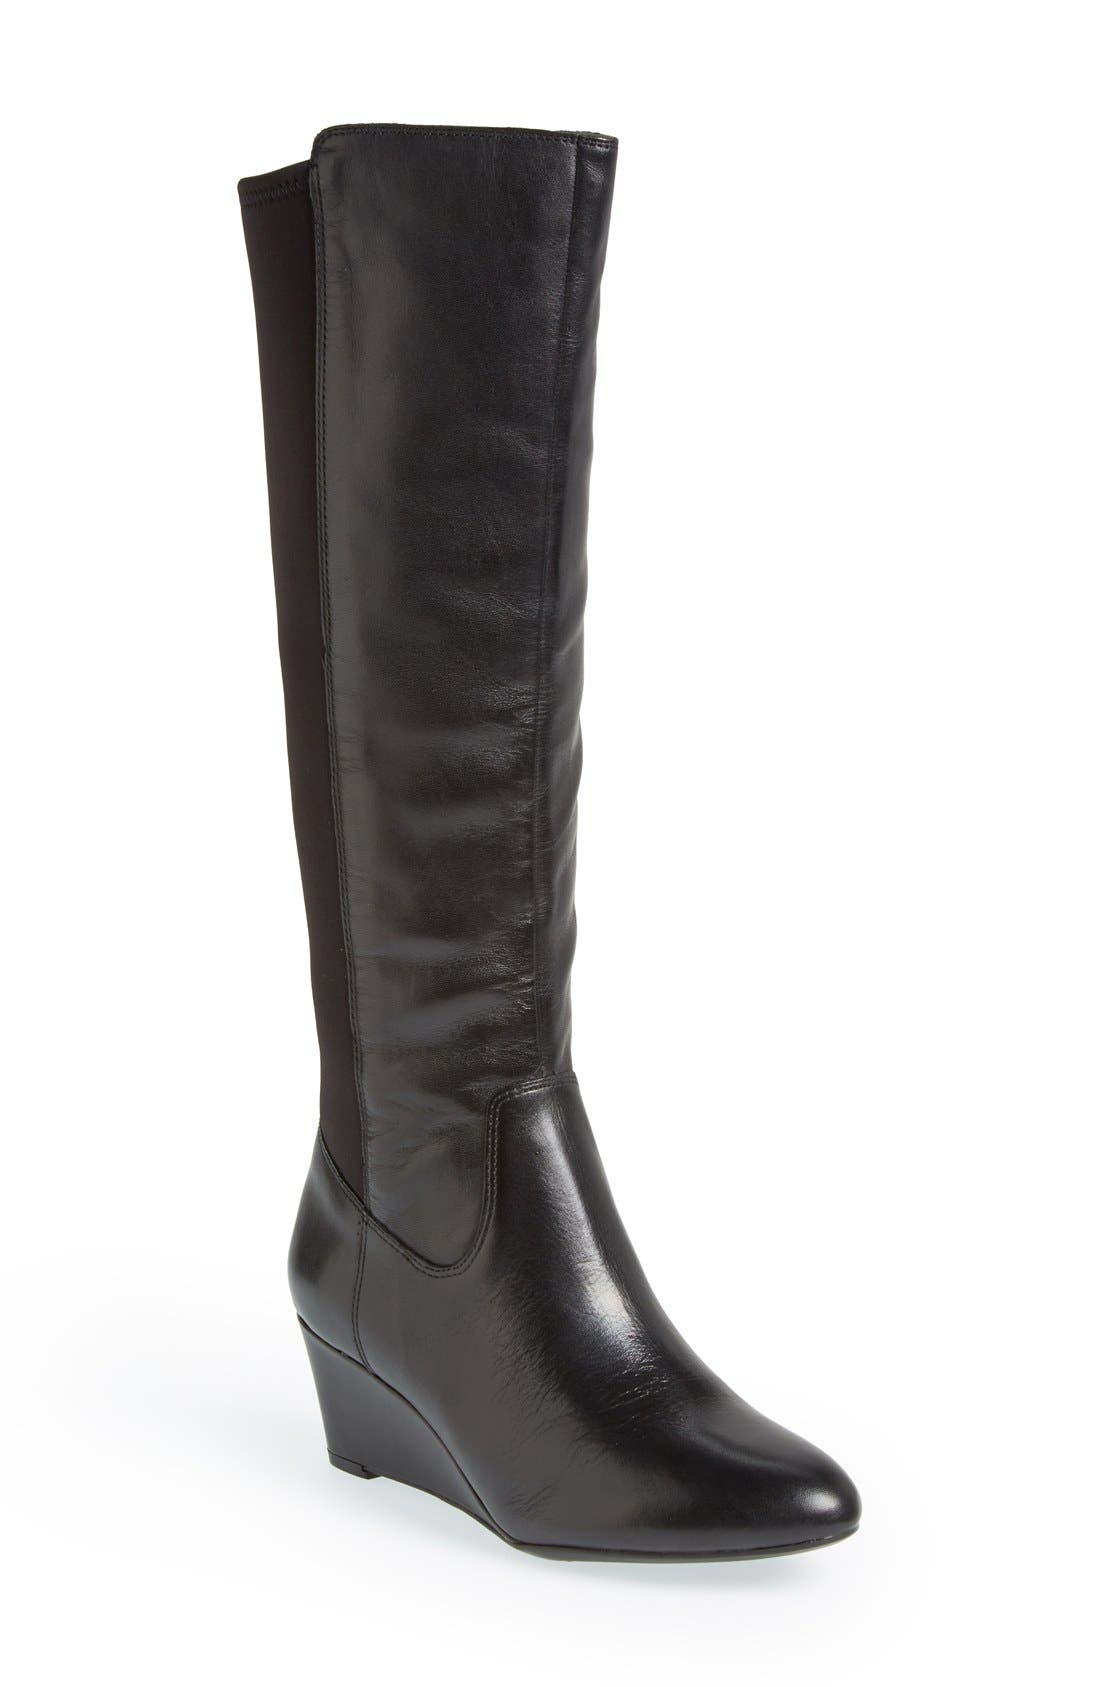 Main Image - Naturalizer 'Quinlee' Knee High Boot (Women)